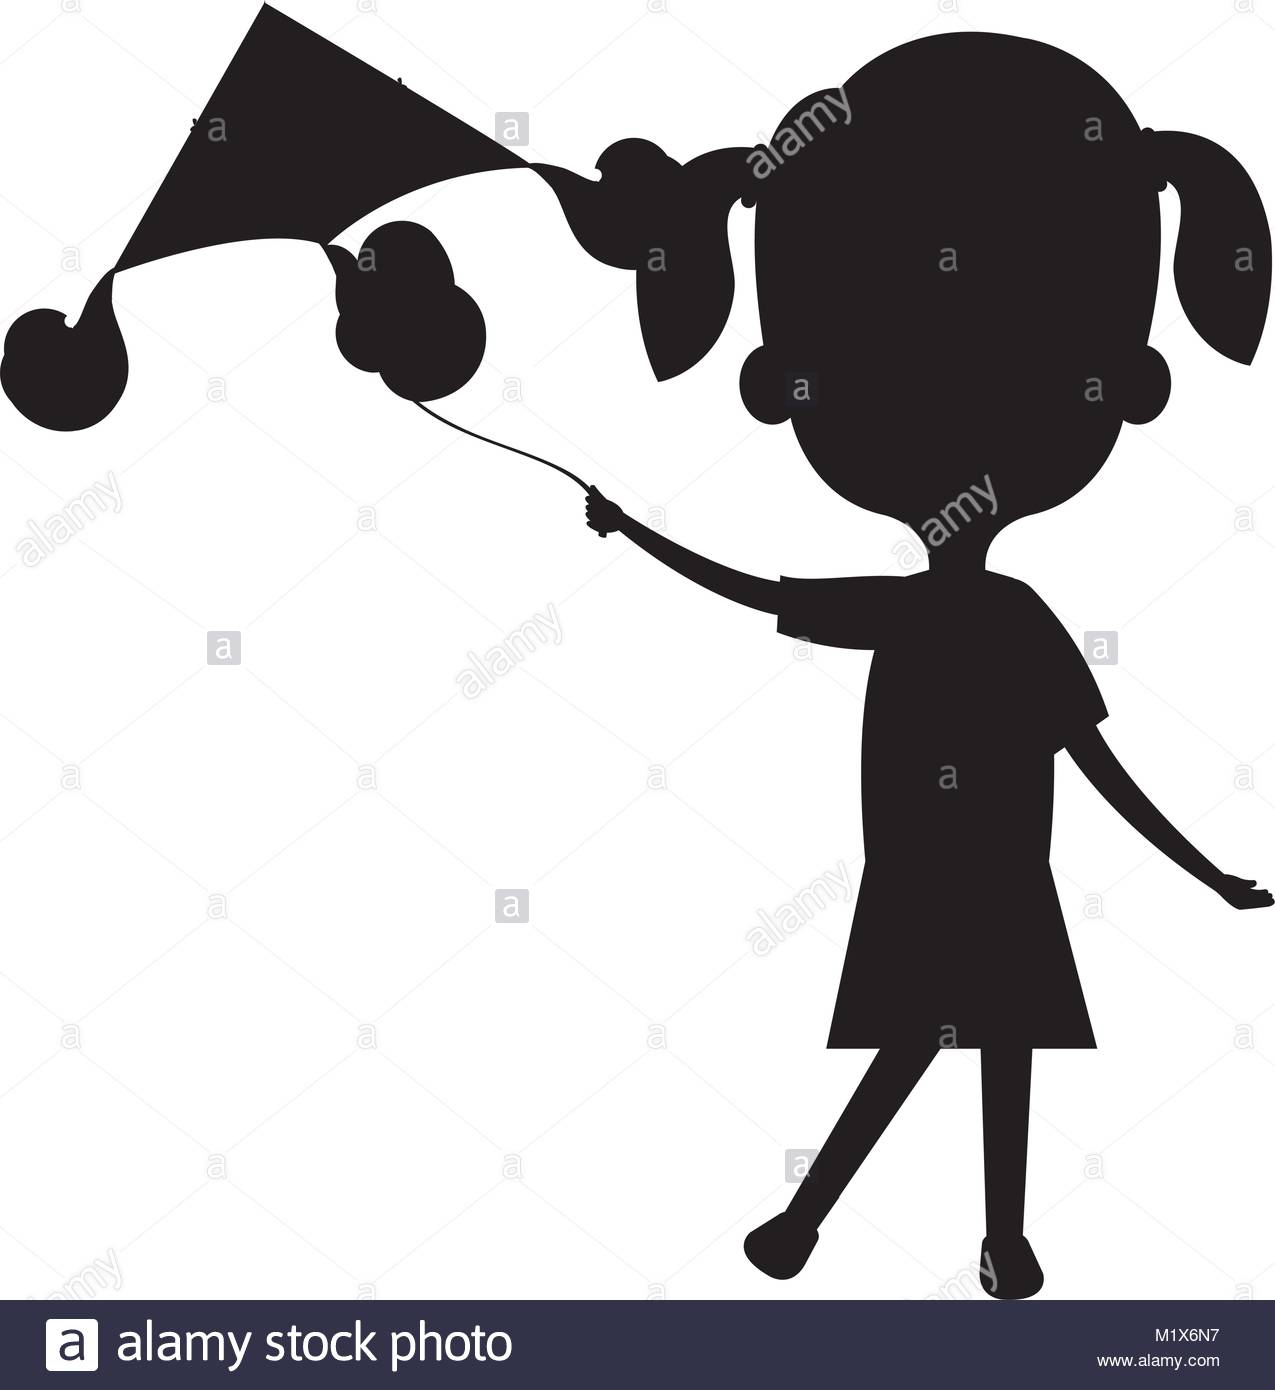 1275x1390 Cute And Little Girl Flying A Kite Silhouette Stock Vector Art